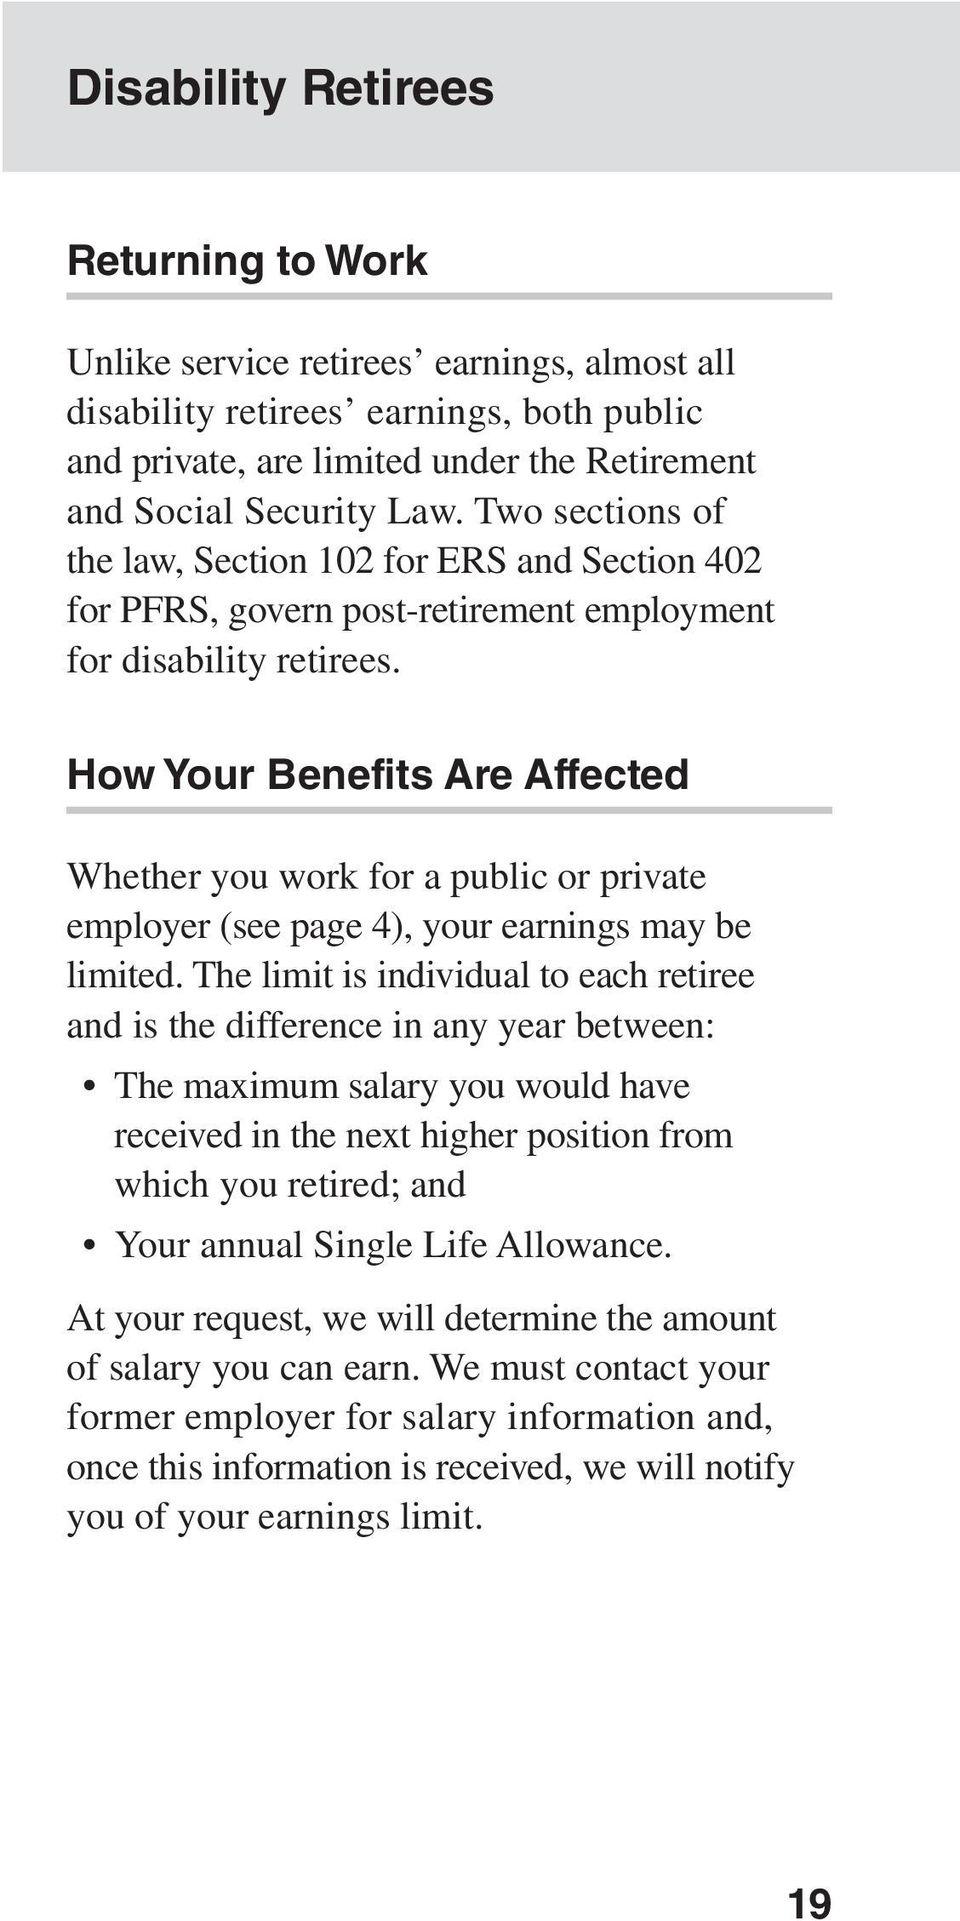 How Your Benefits Are Affected Whether you work for a public or private employer (see page 4), your earnings may be limited.